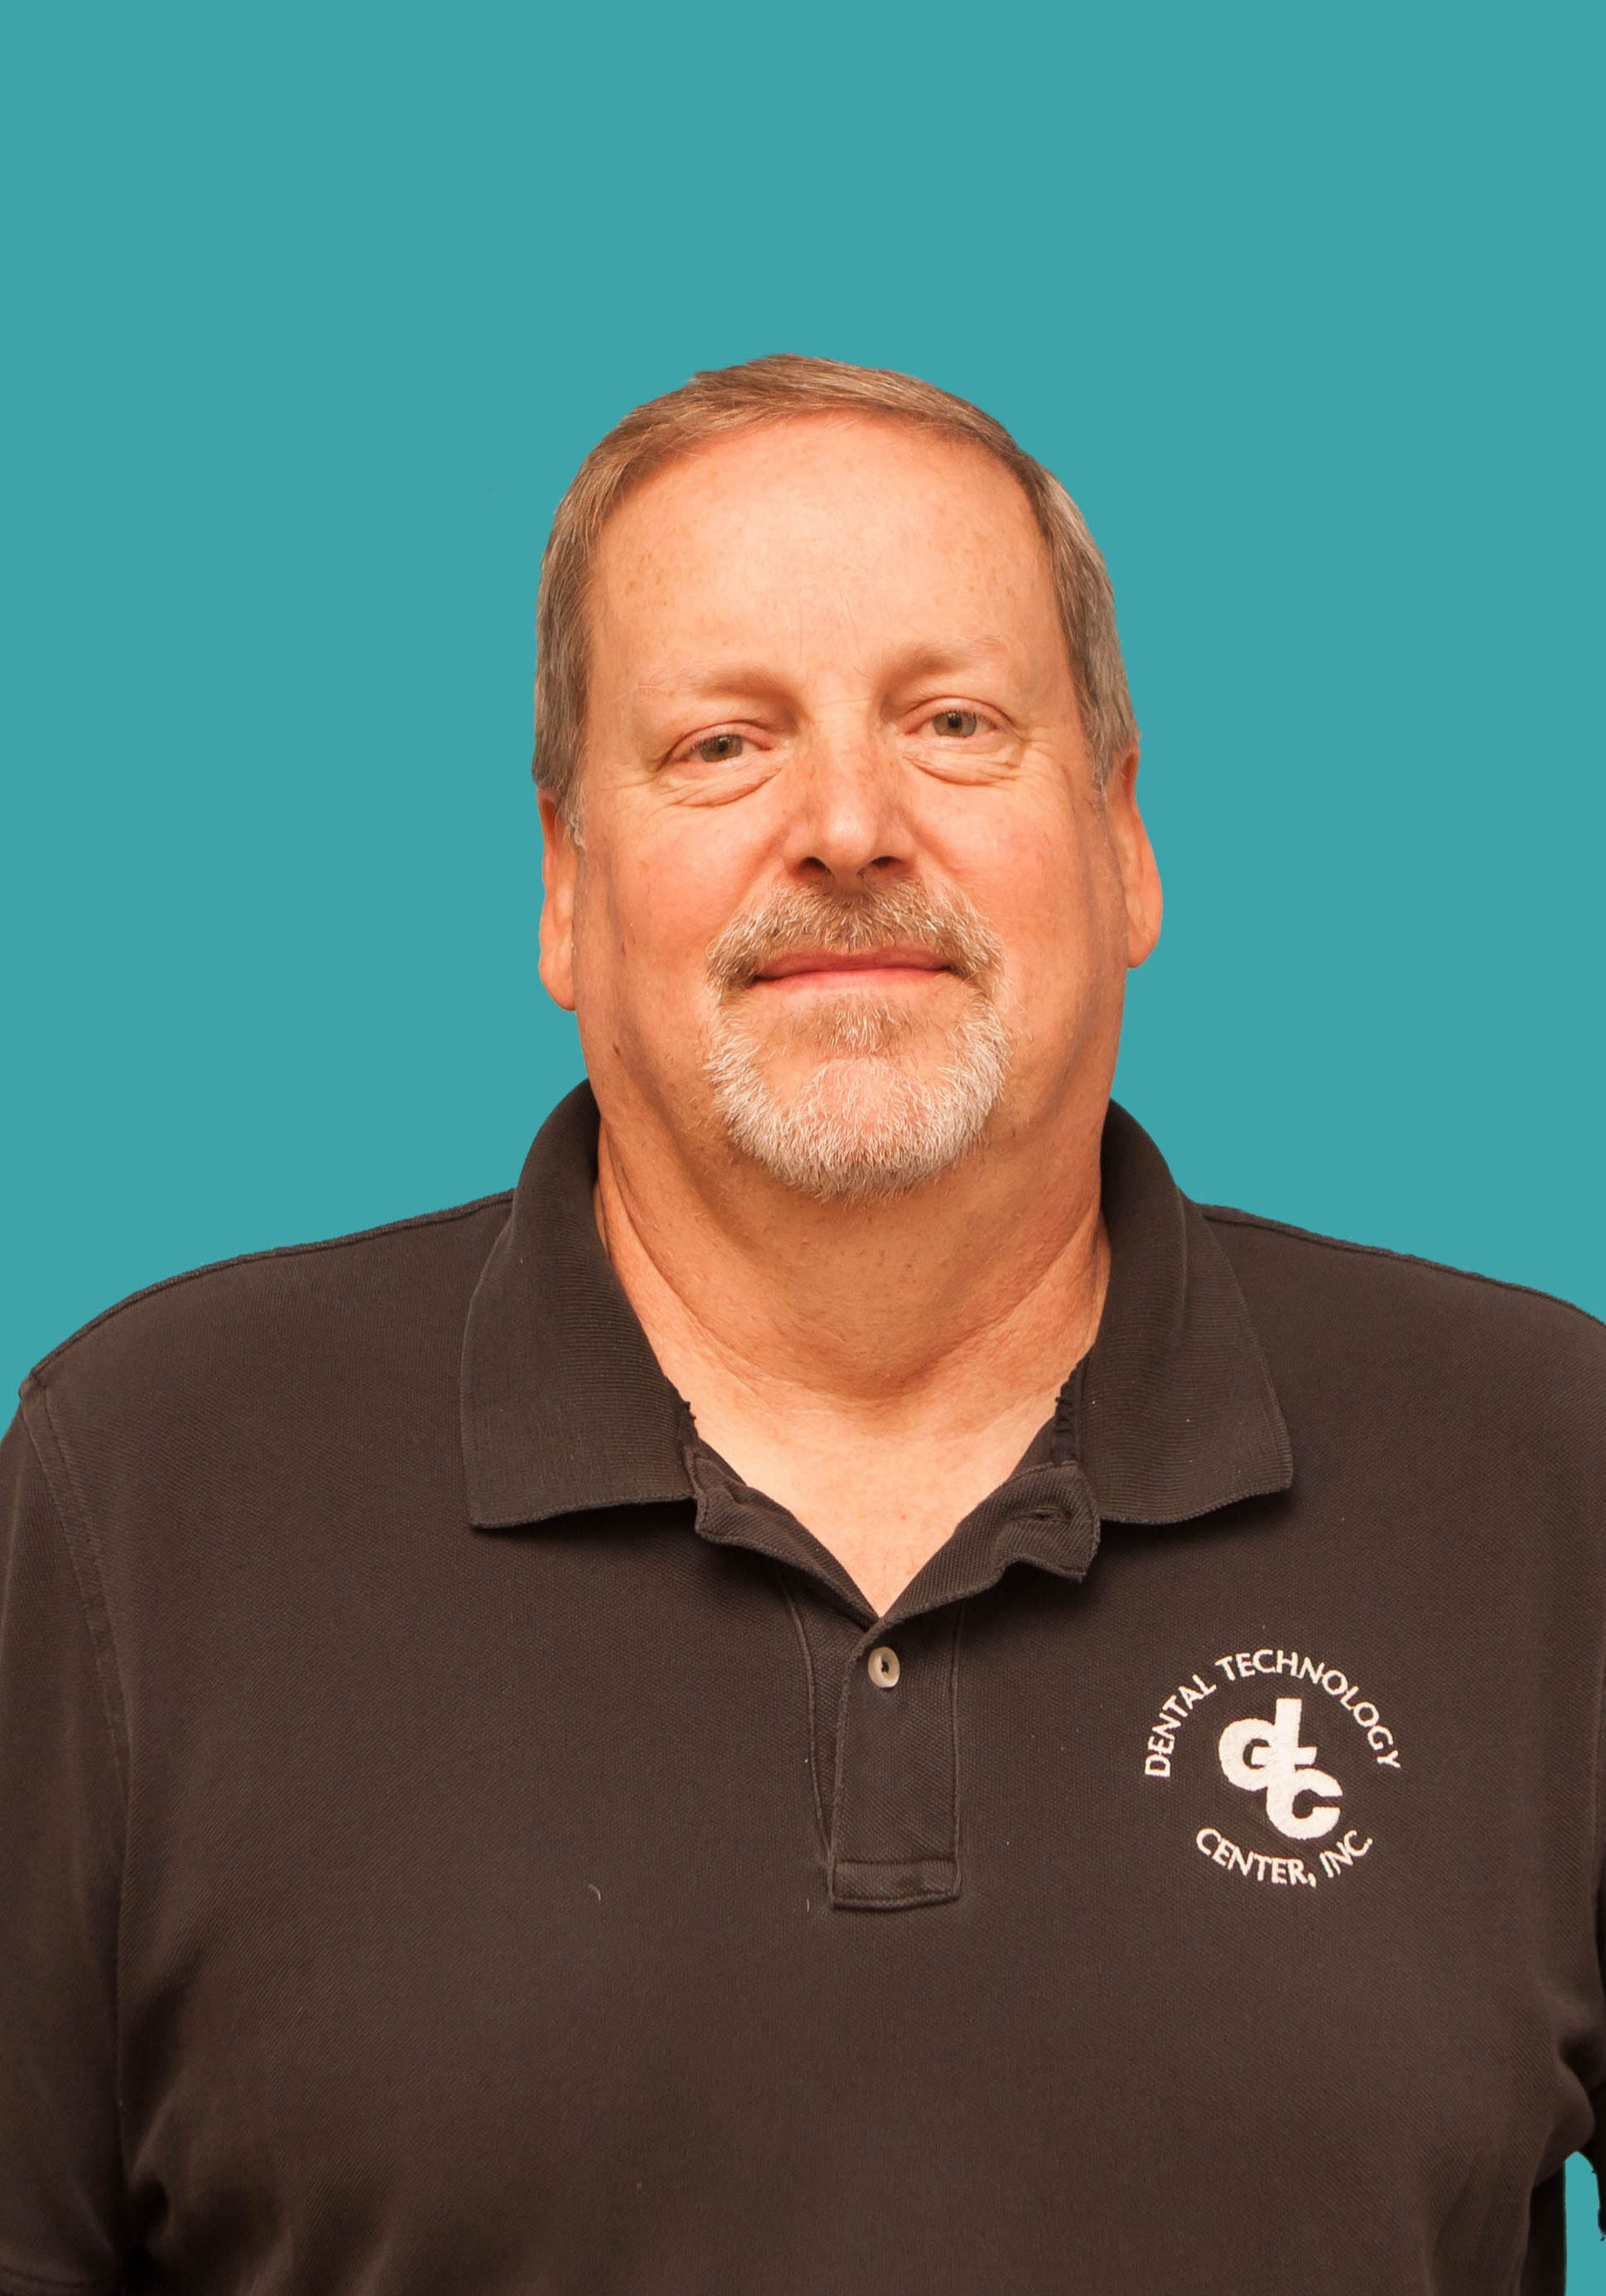 Skip Wheatley - Project Manager